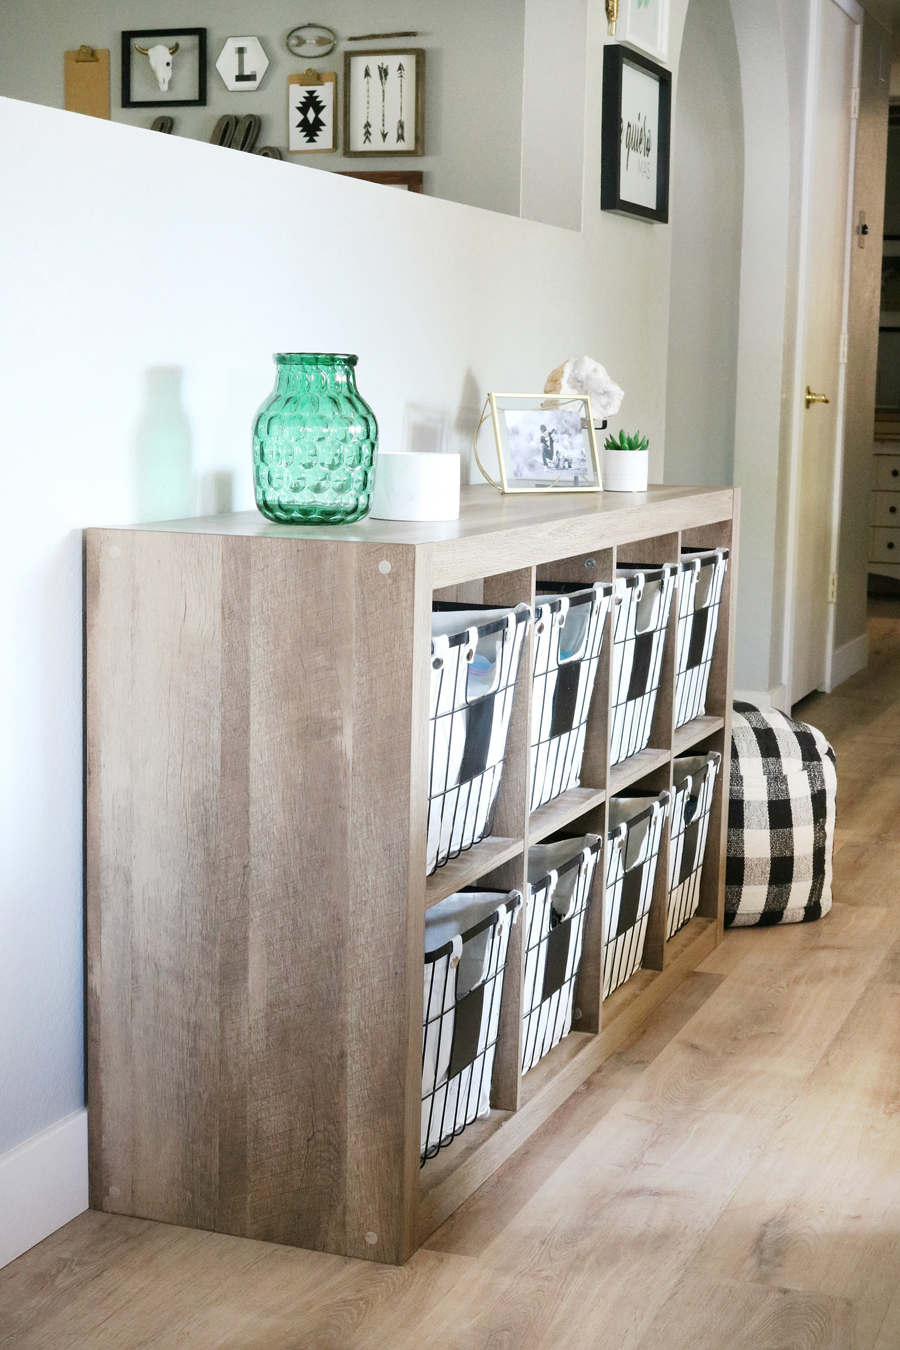 Family Room Refresh - BHGLiveBetter Cube Organizer with Metal Baskets